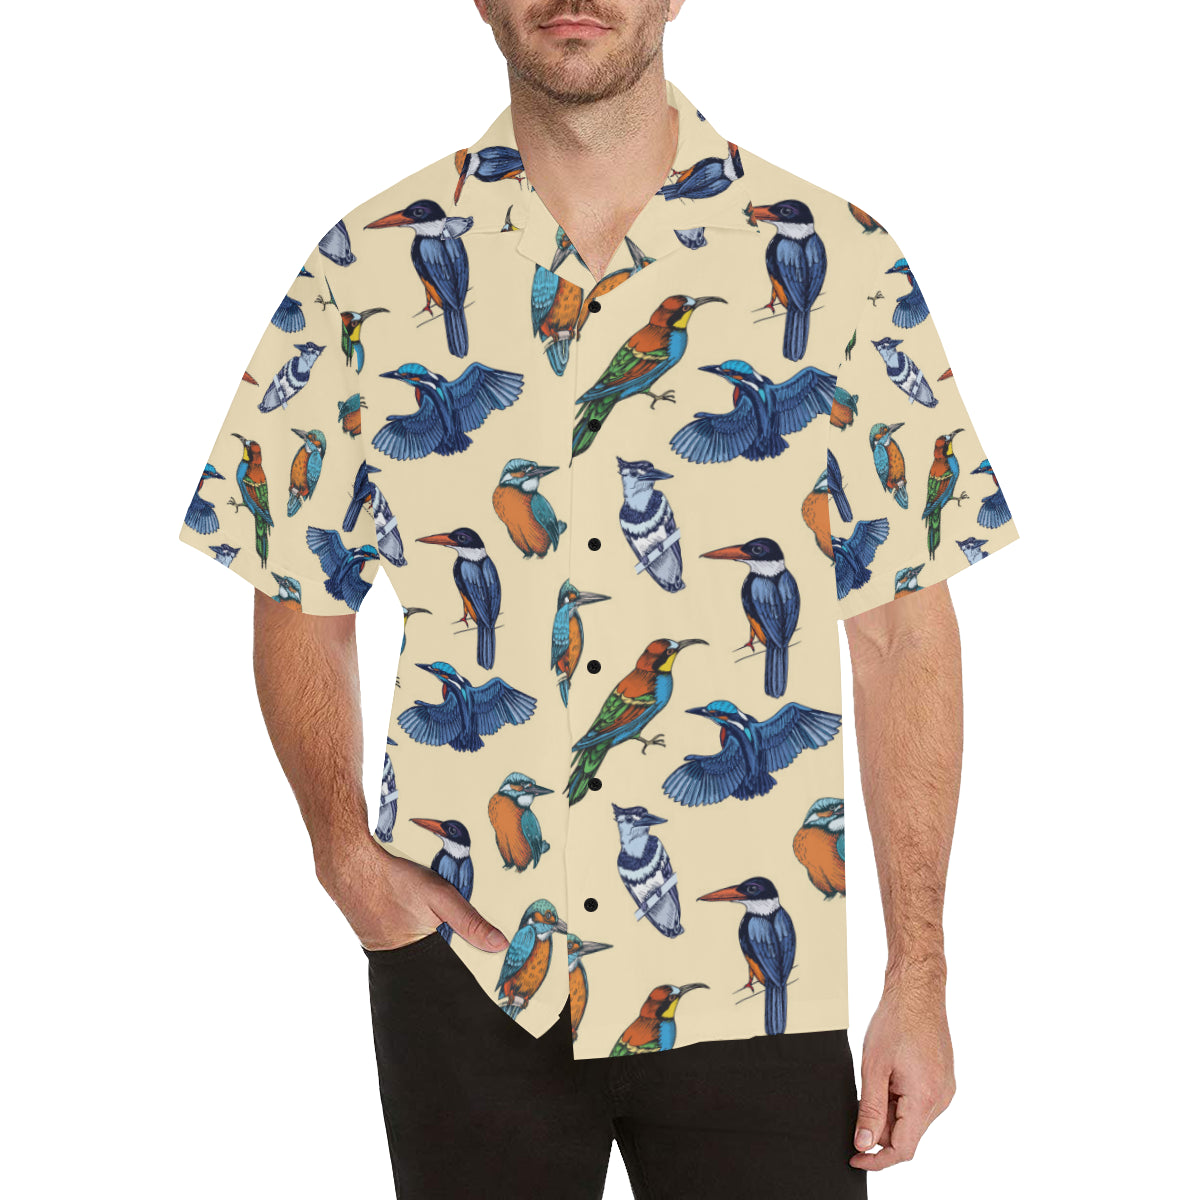 Kingfisher Bird Pattern Print Design 04 Hawaiian Shirt